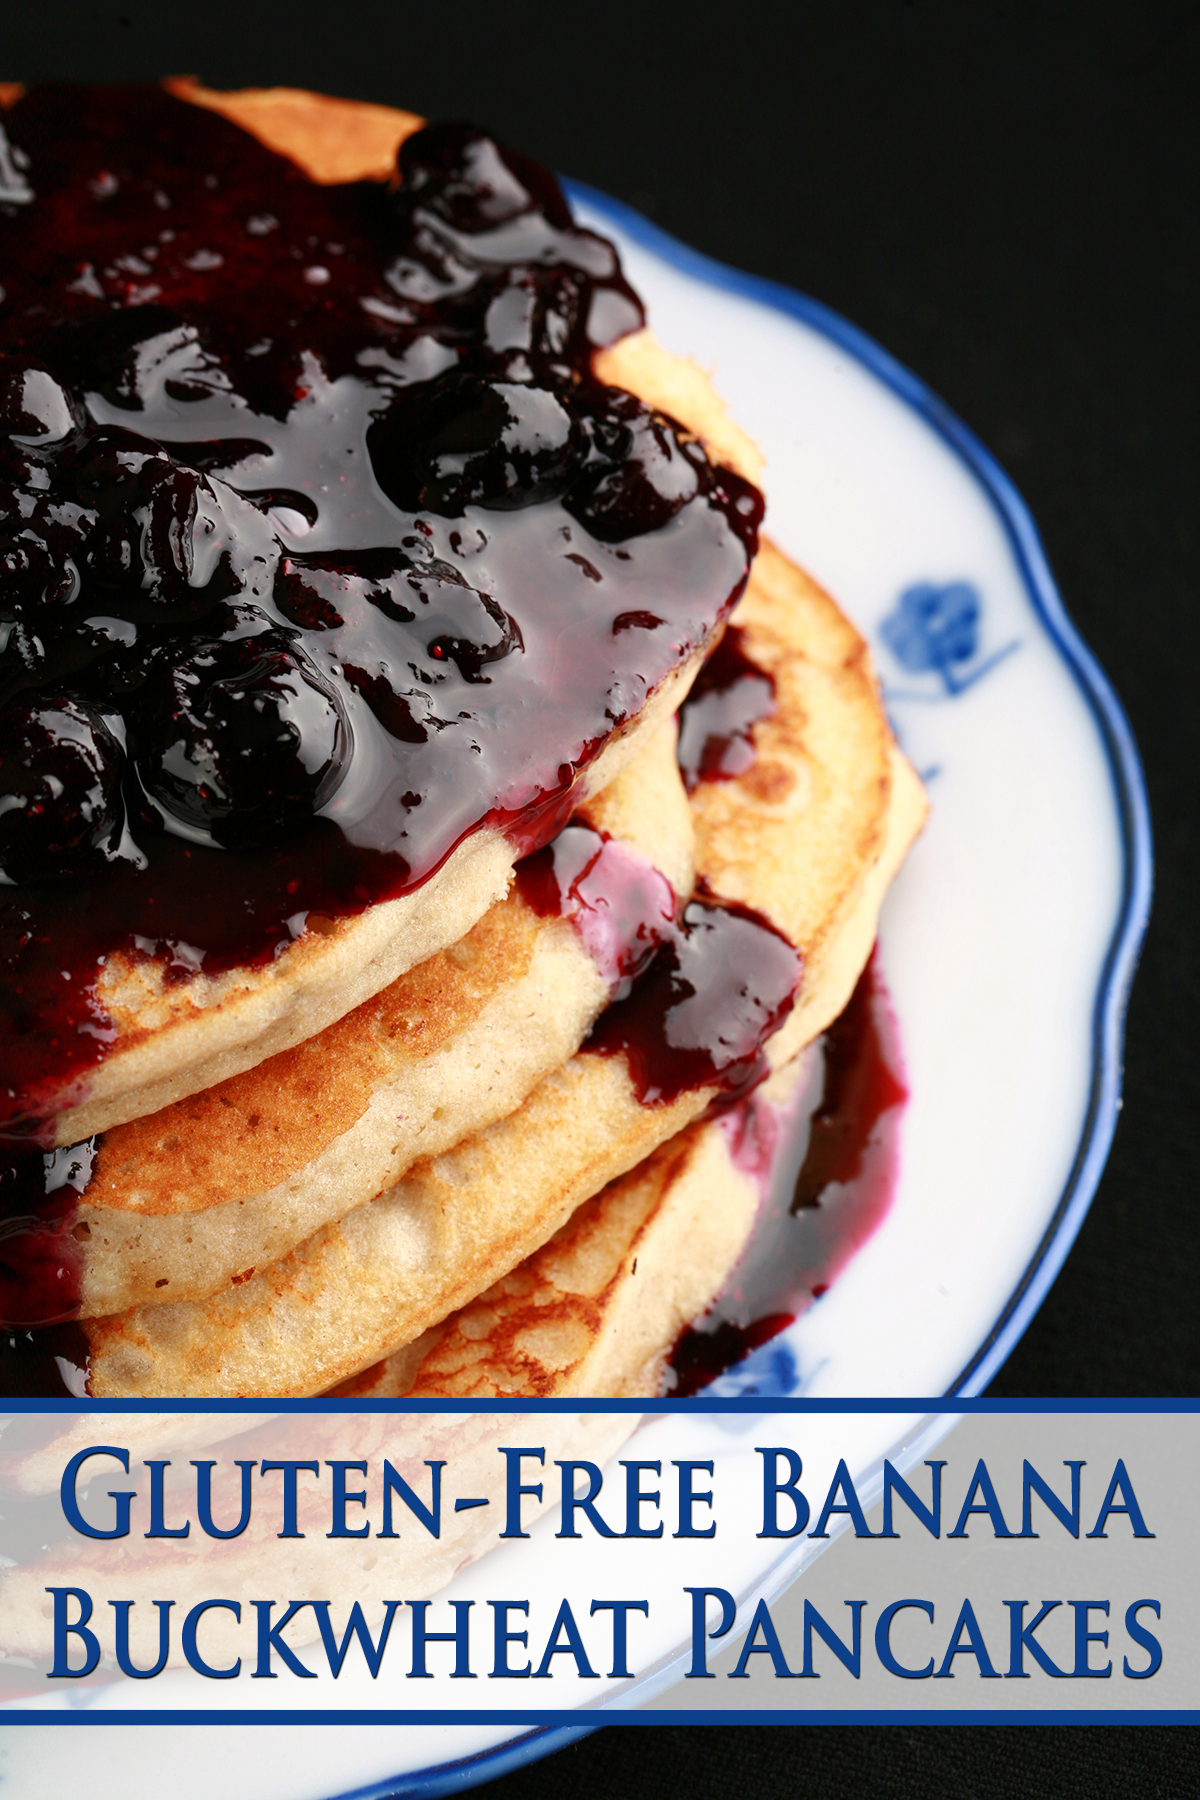 A stack of gluten-free banana buckwheat pancakes on a plate. It is topped with fresh blueberry sauce.